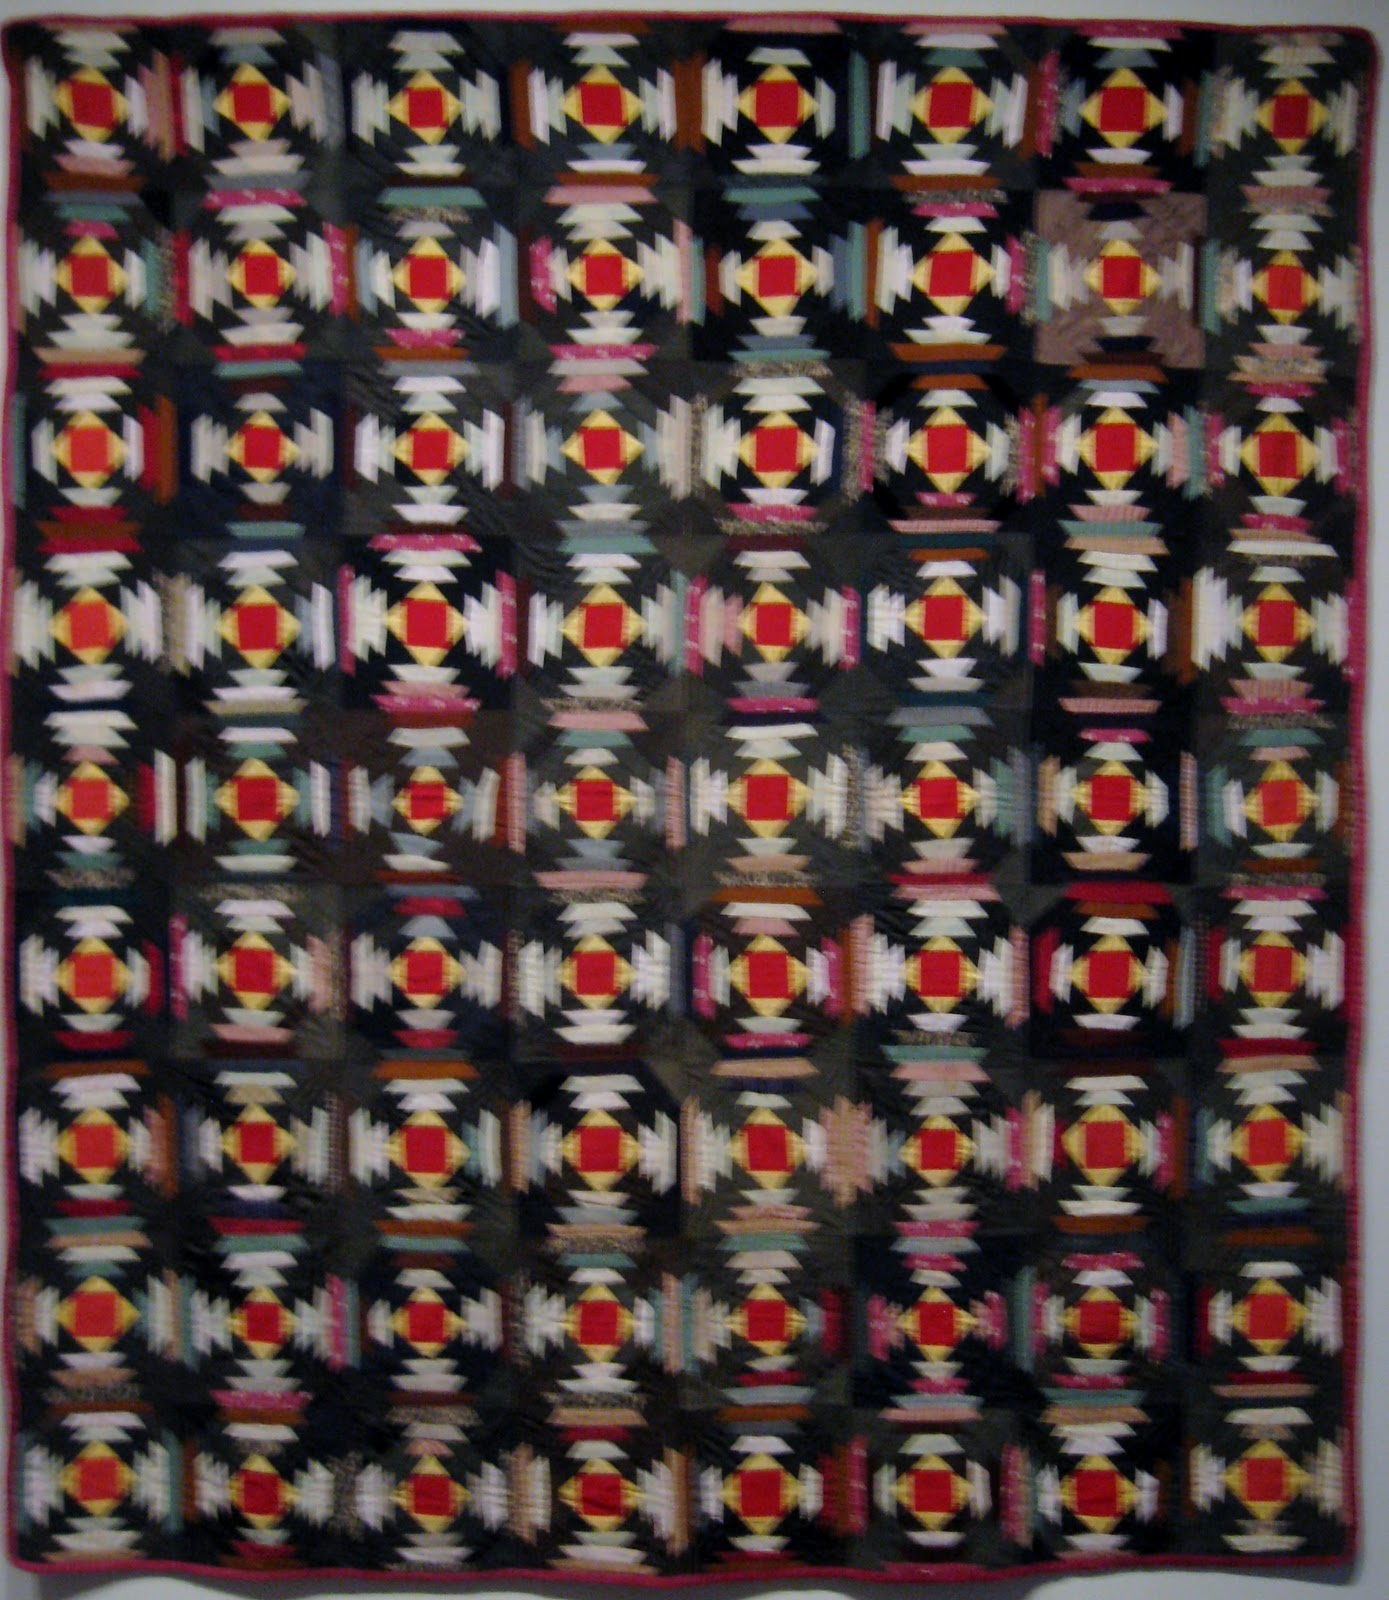 fabric used in the border